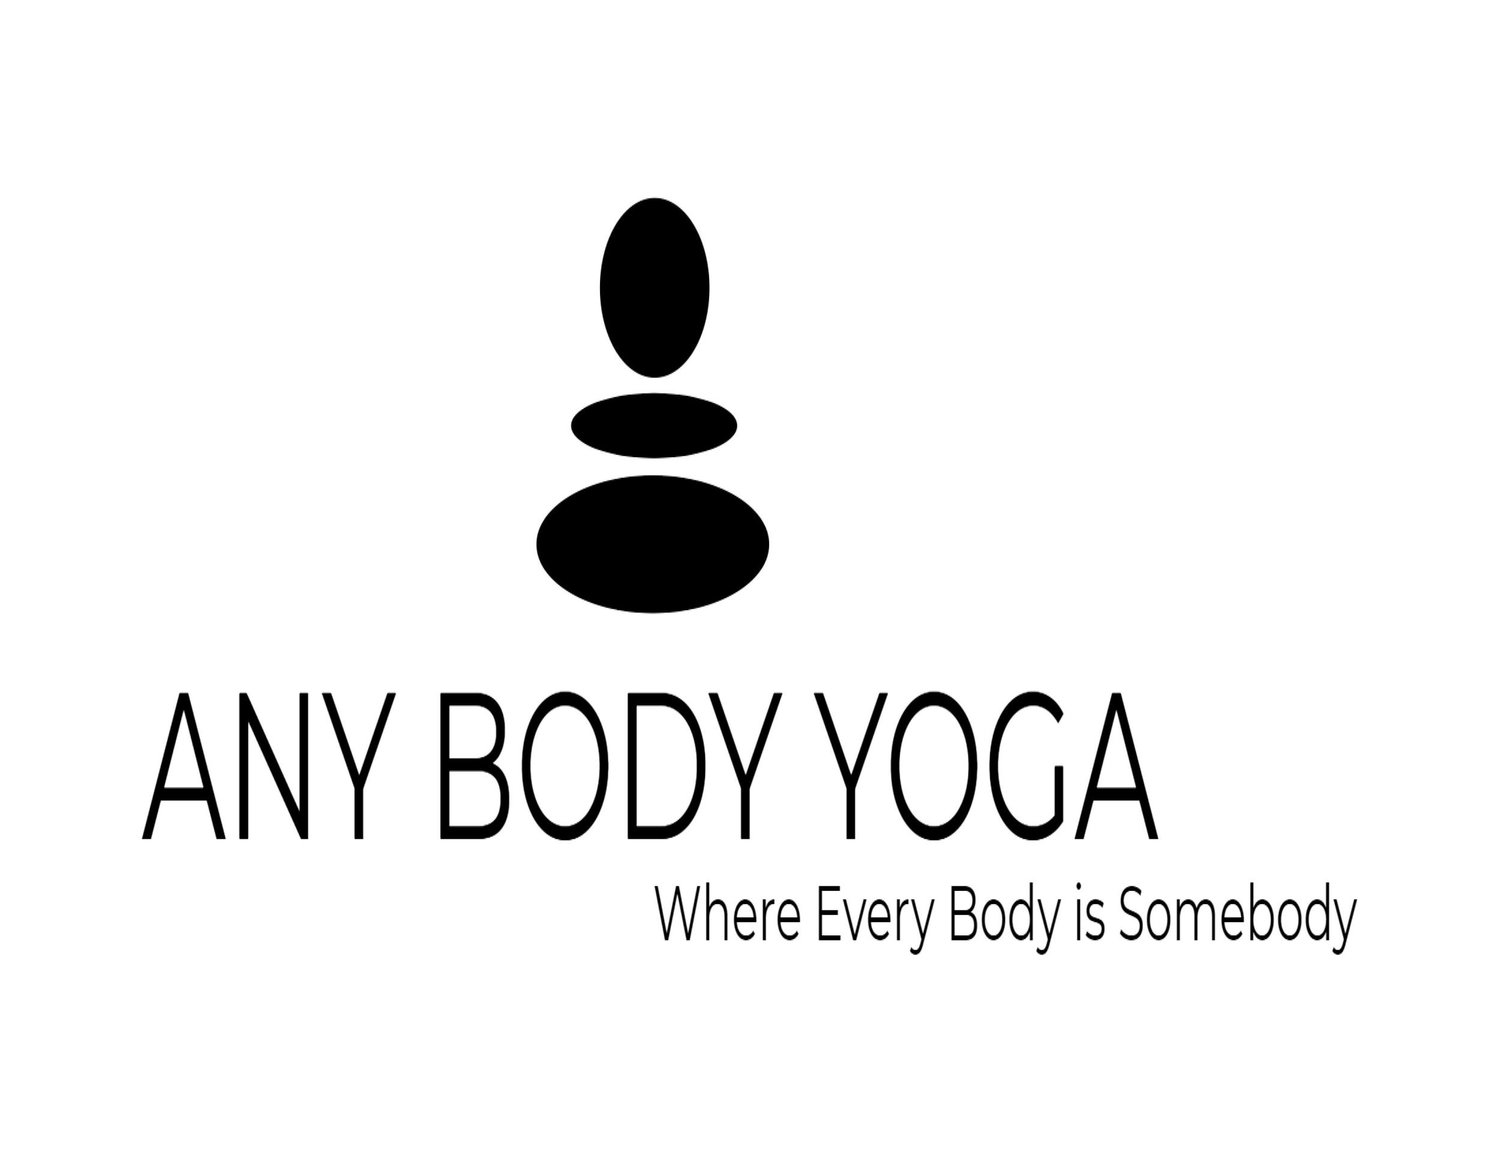 Any Body Yoga